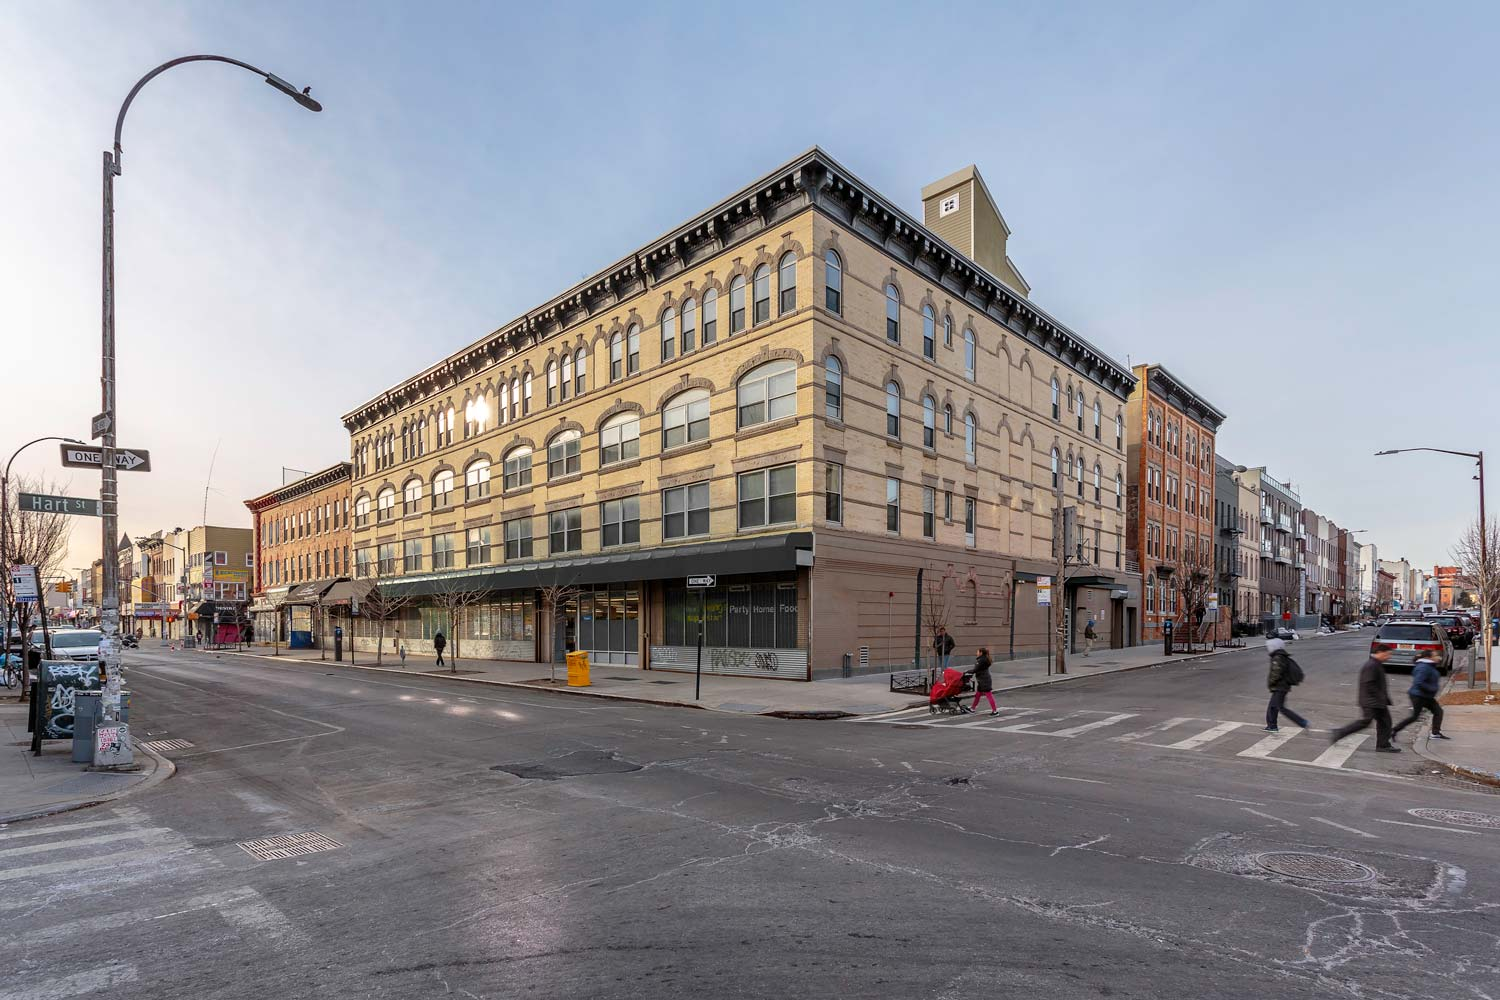 The Knick LEED Homes certified rehabilitation transformed seven boarded up walkups into a condo complex.